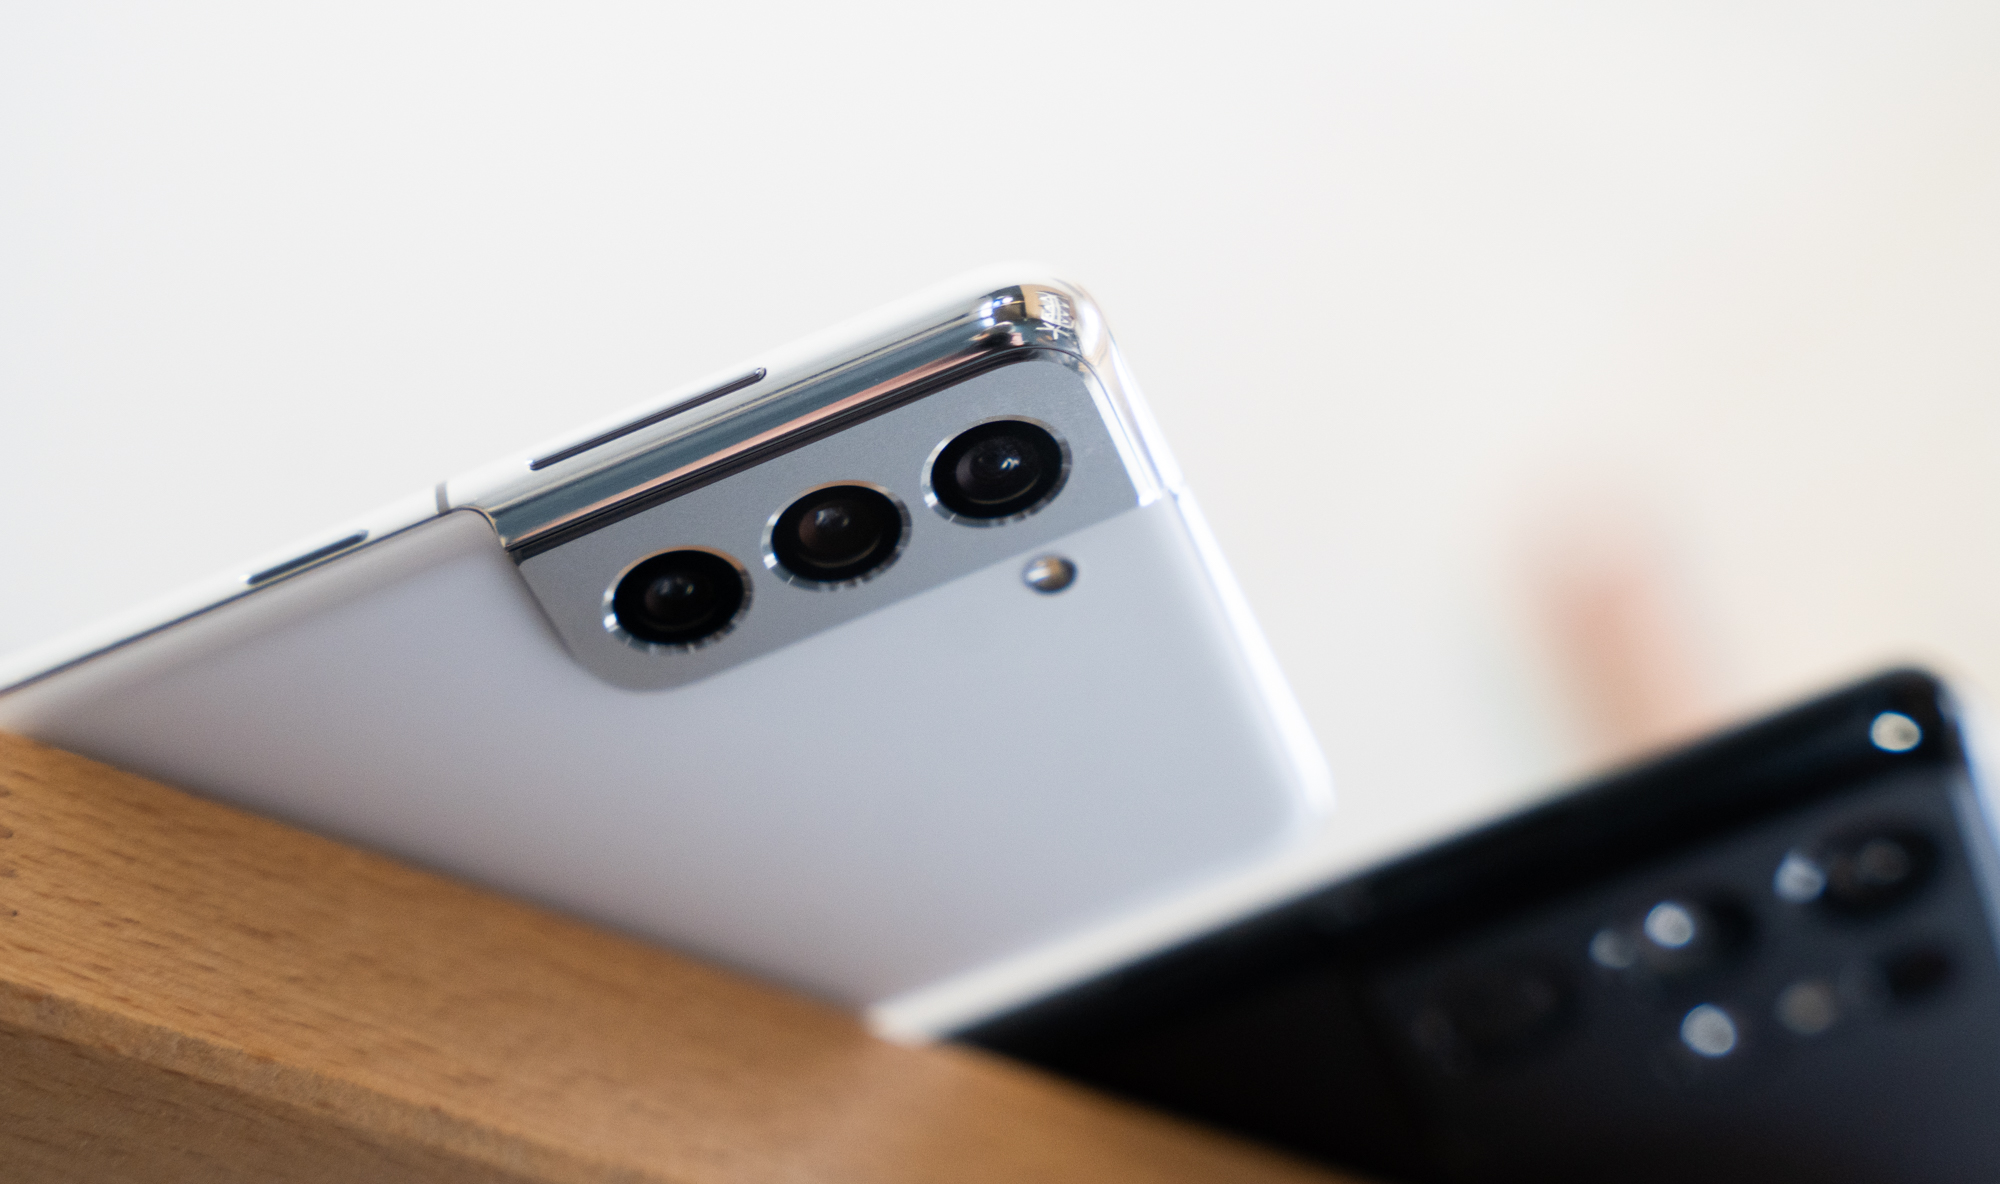 Samsung Galaxy S21 review: a return to form